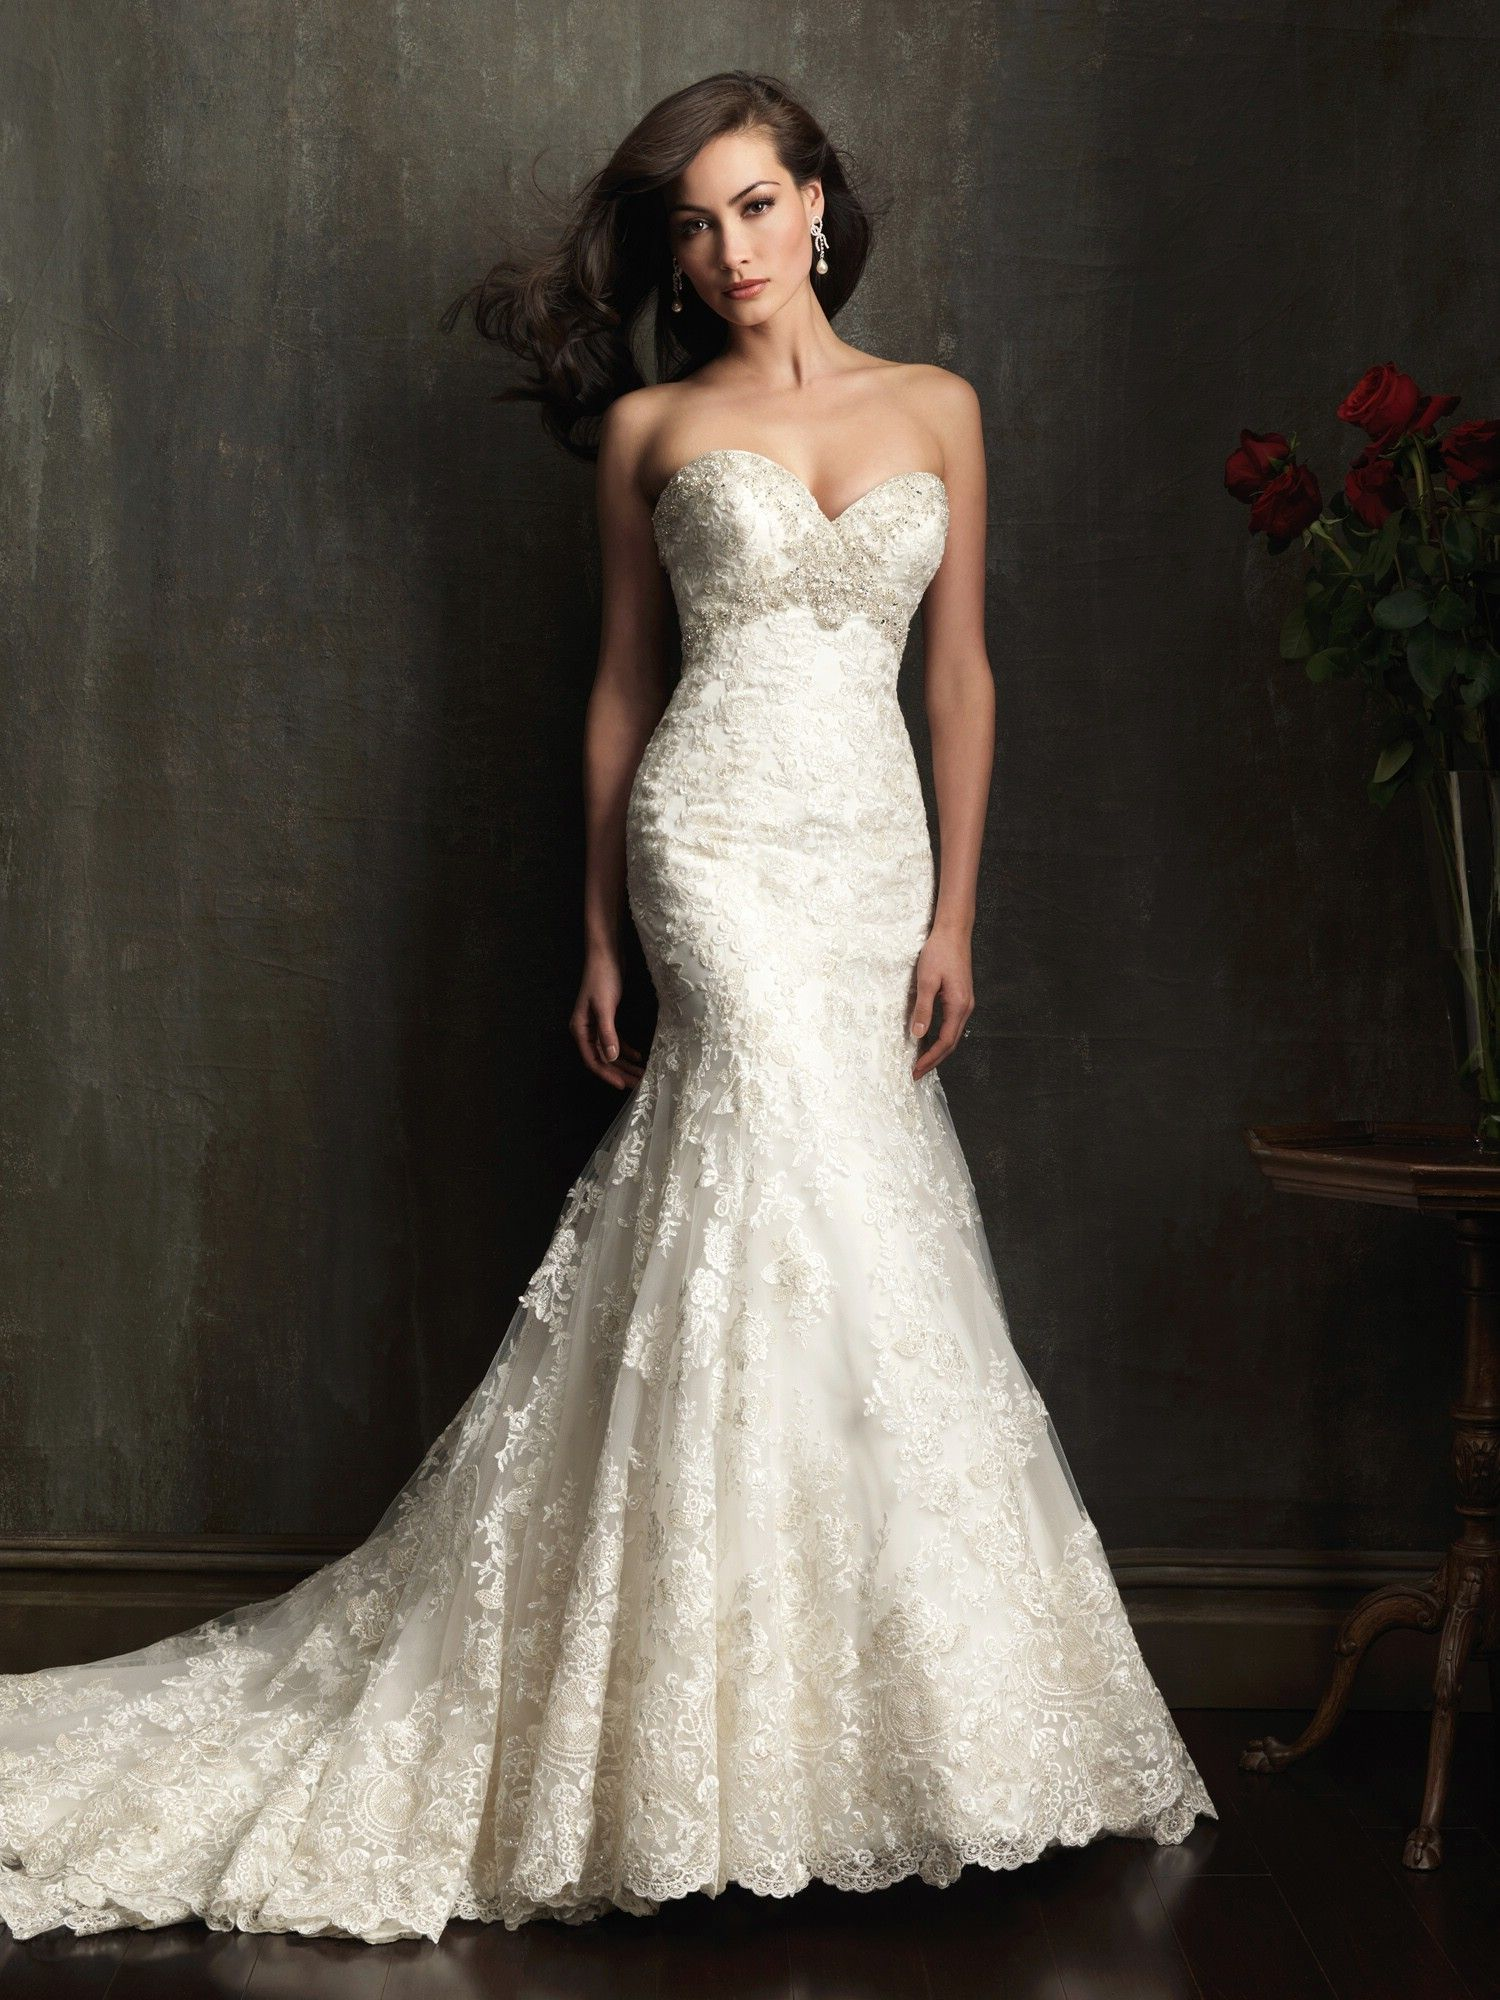 Allure wedding dresses prices at exclusive wedding decoration and cute wedding dresses bridesmaid dresses prom dresses and bridal dresses allure wedding dresses style ombrellifo Images